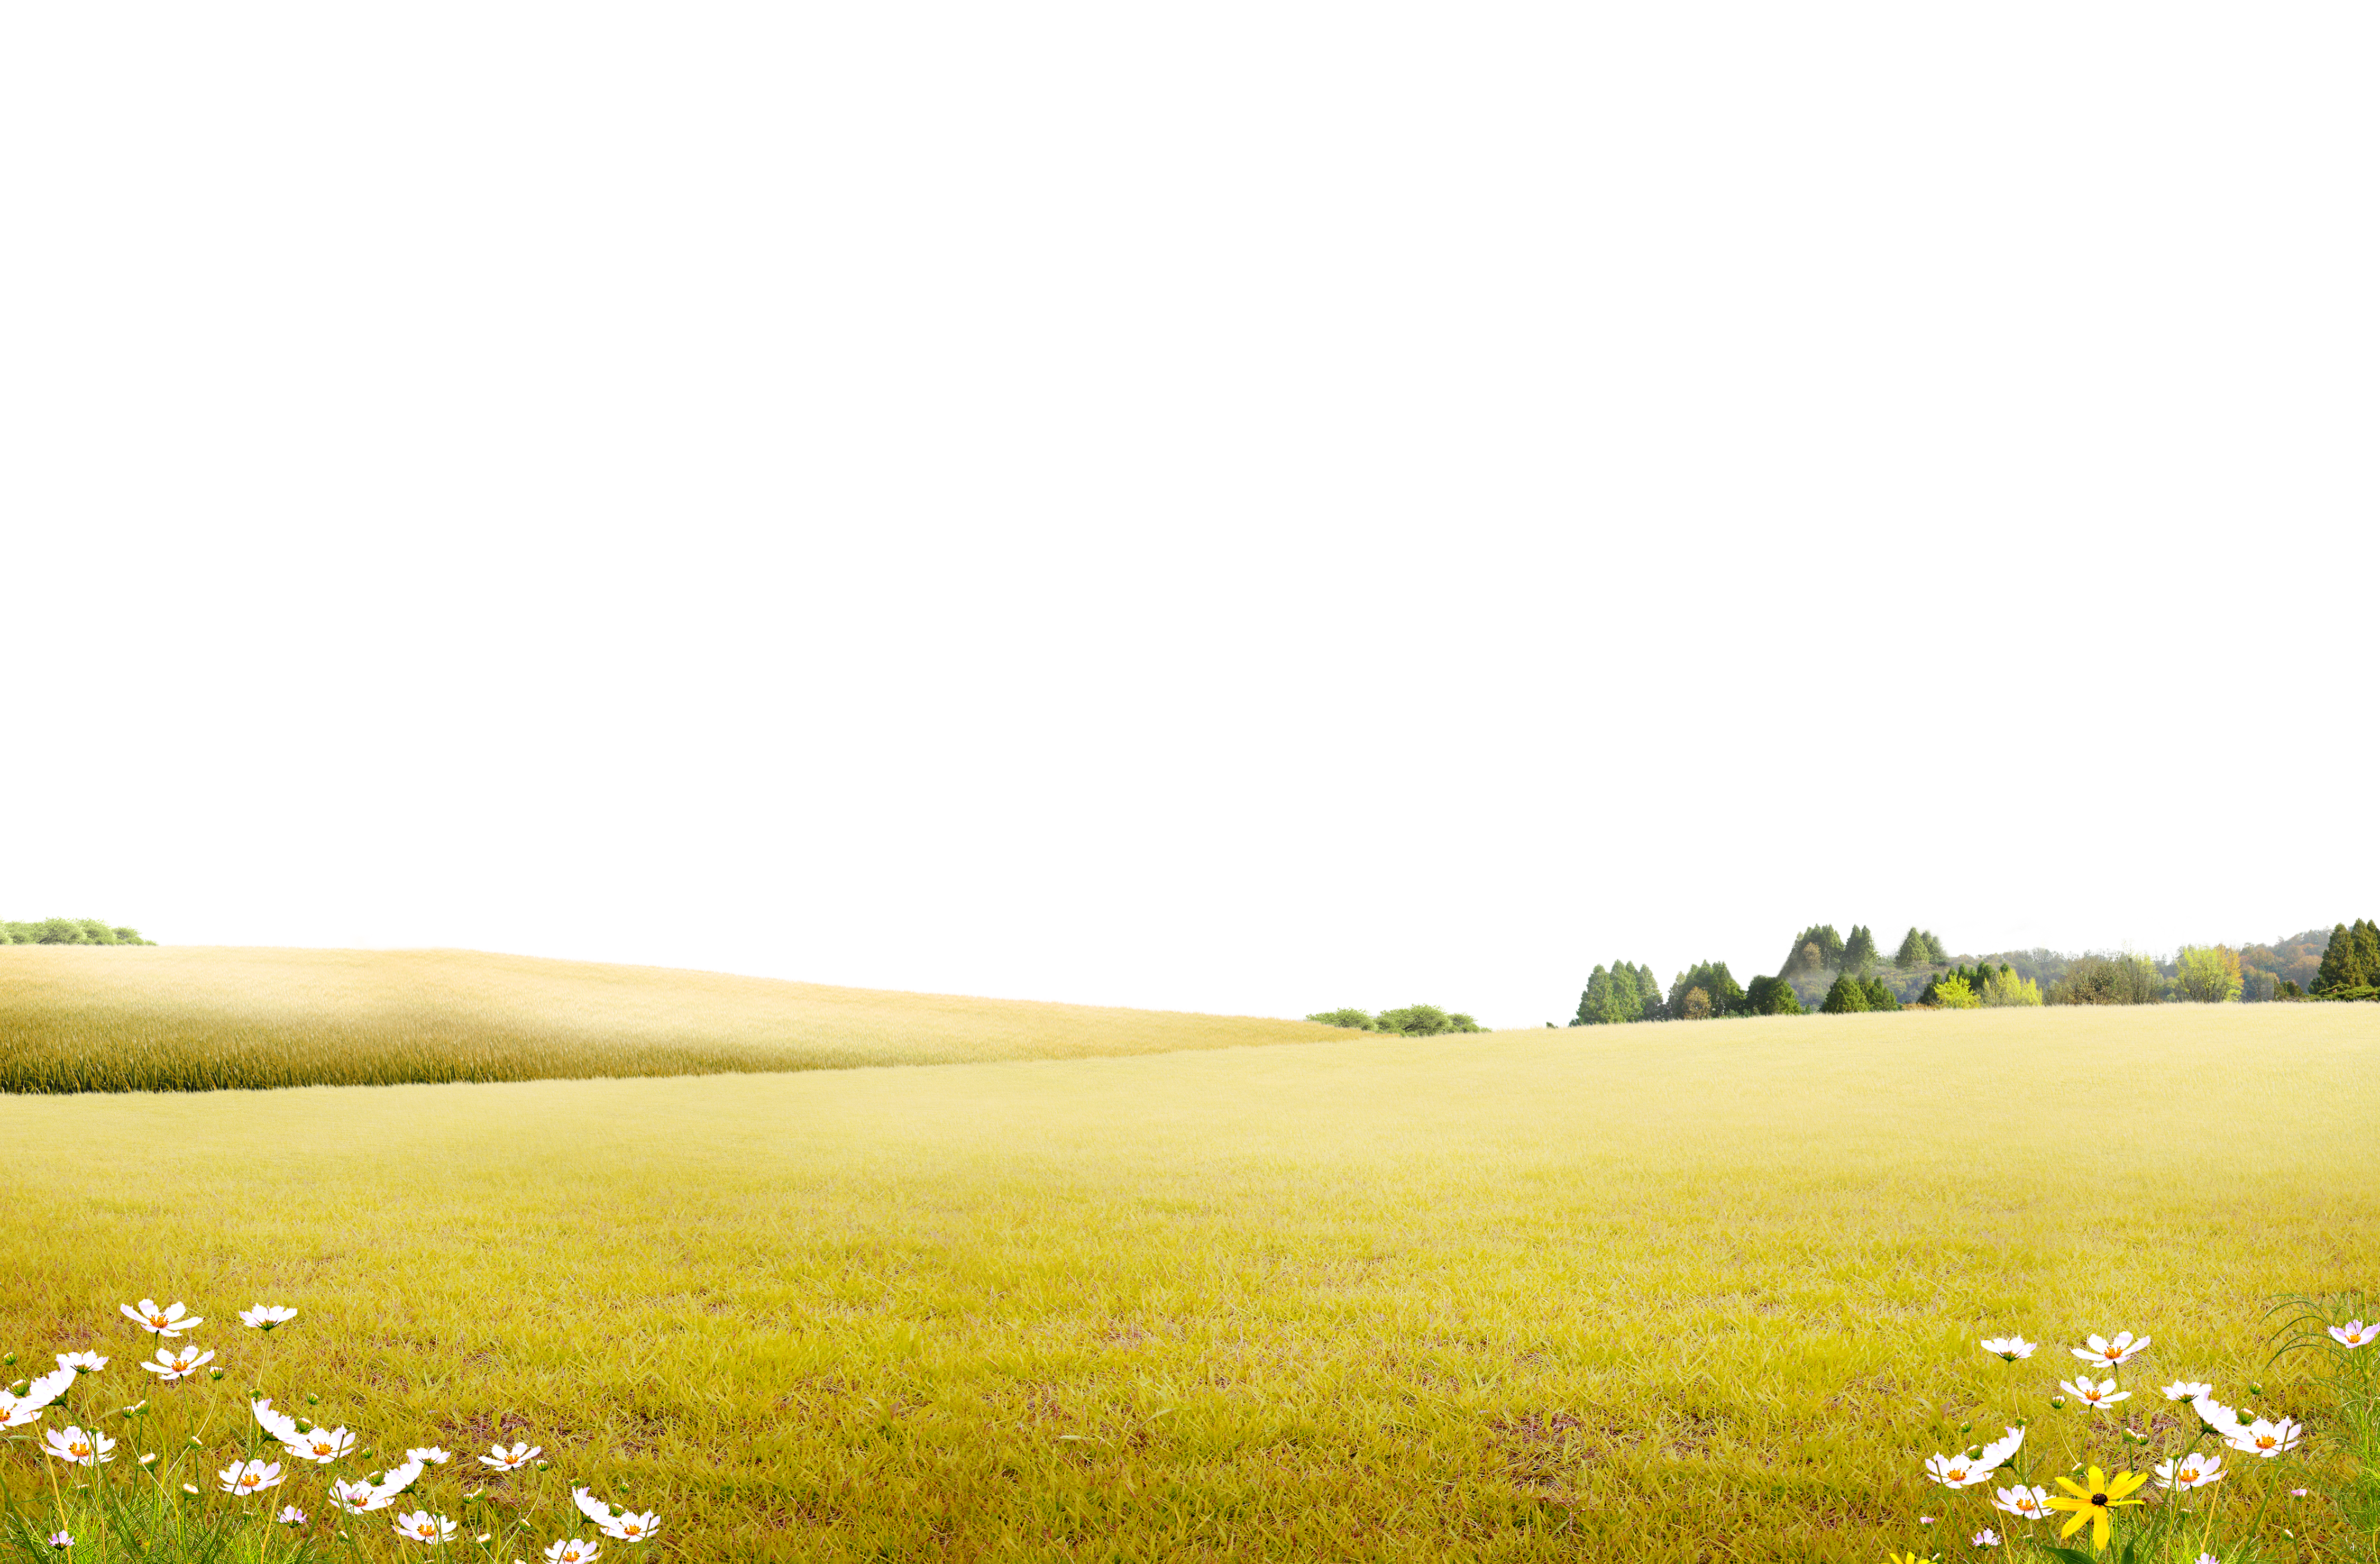 Land vector nature background